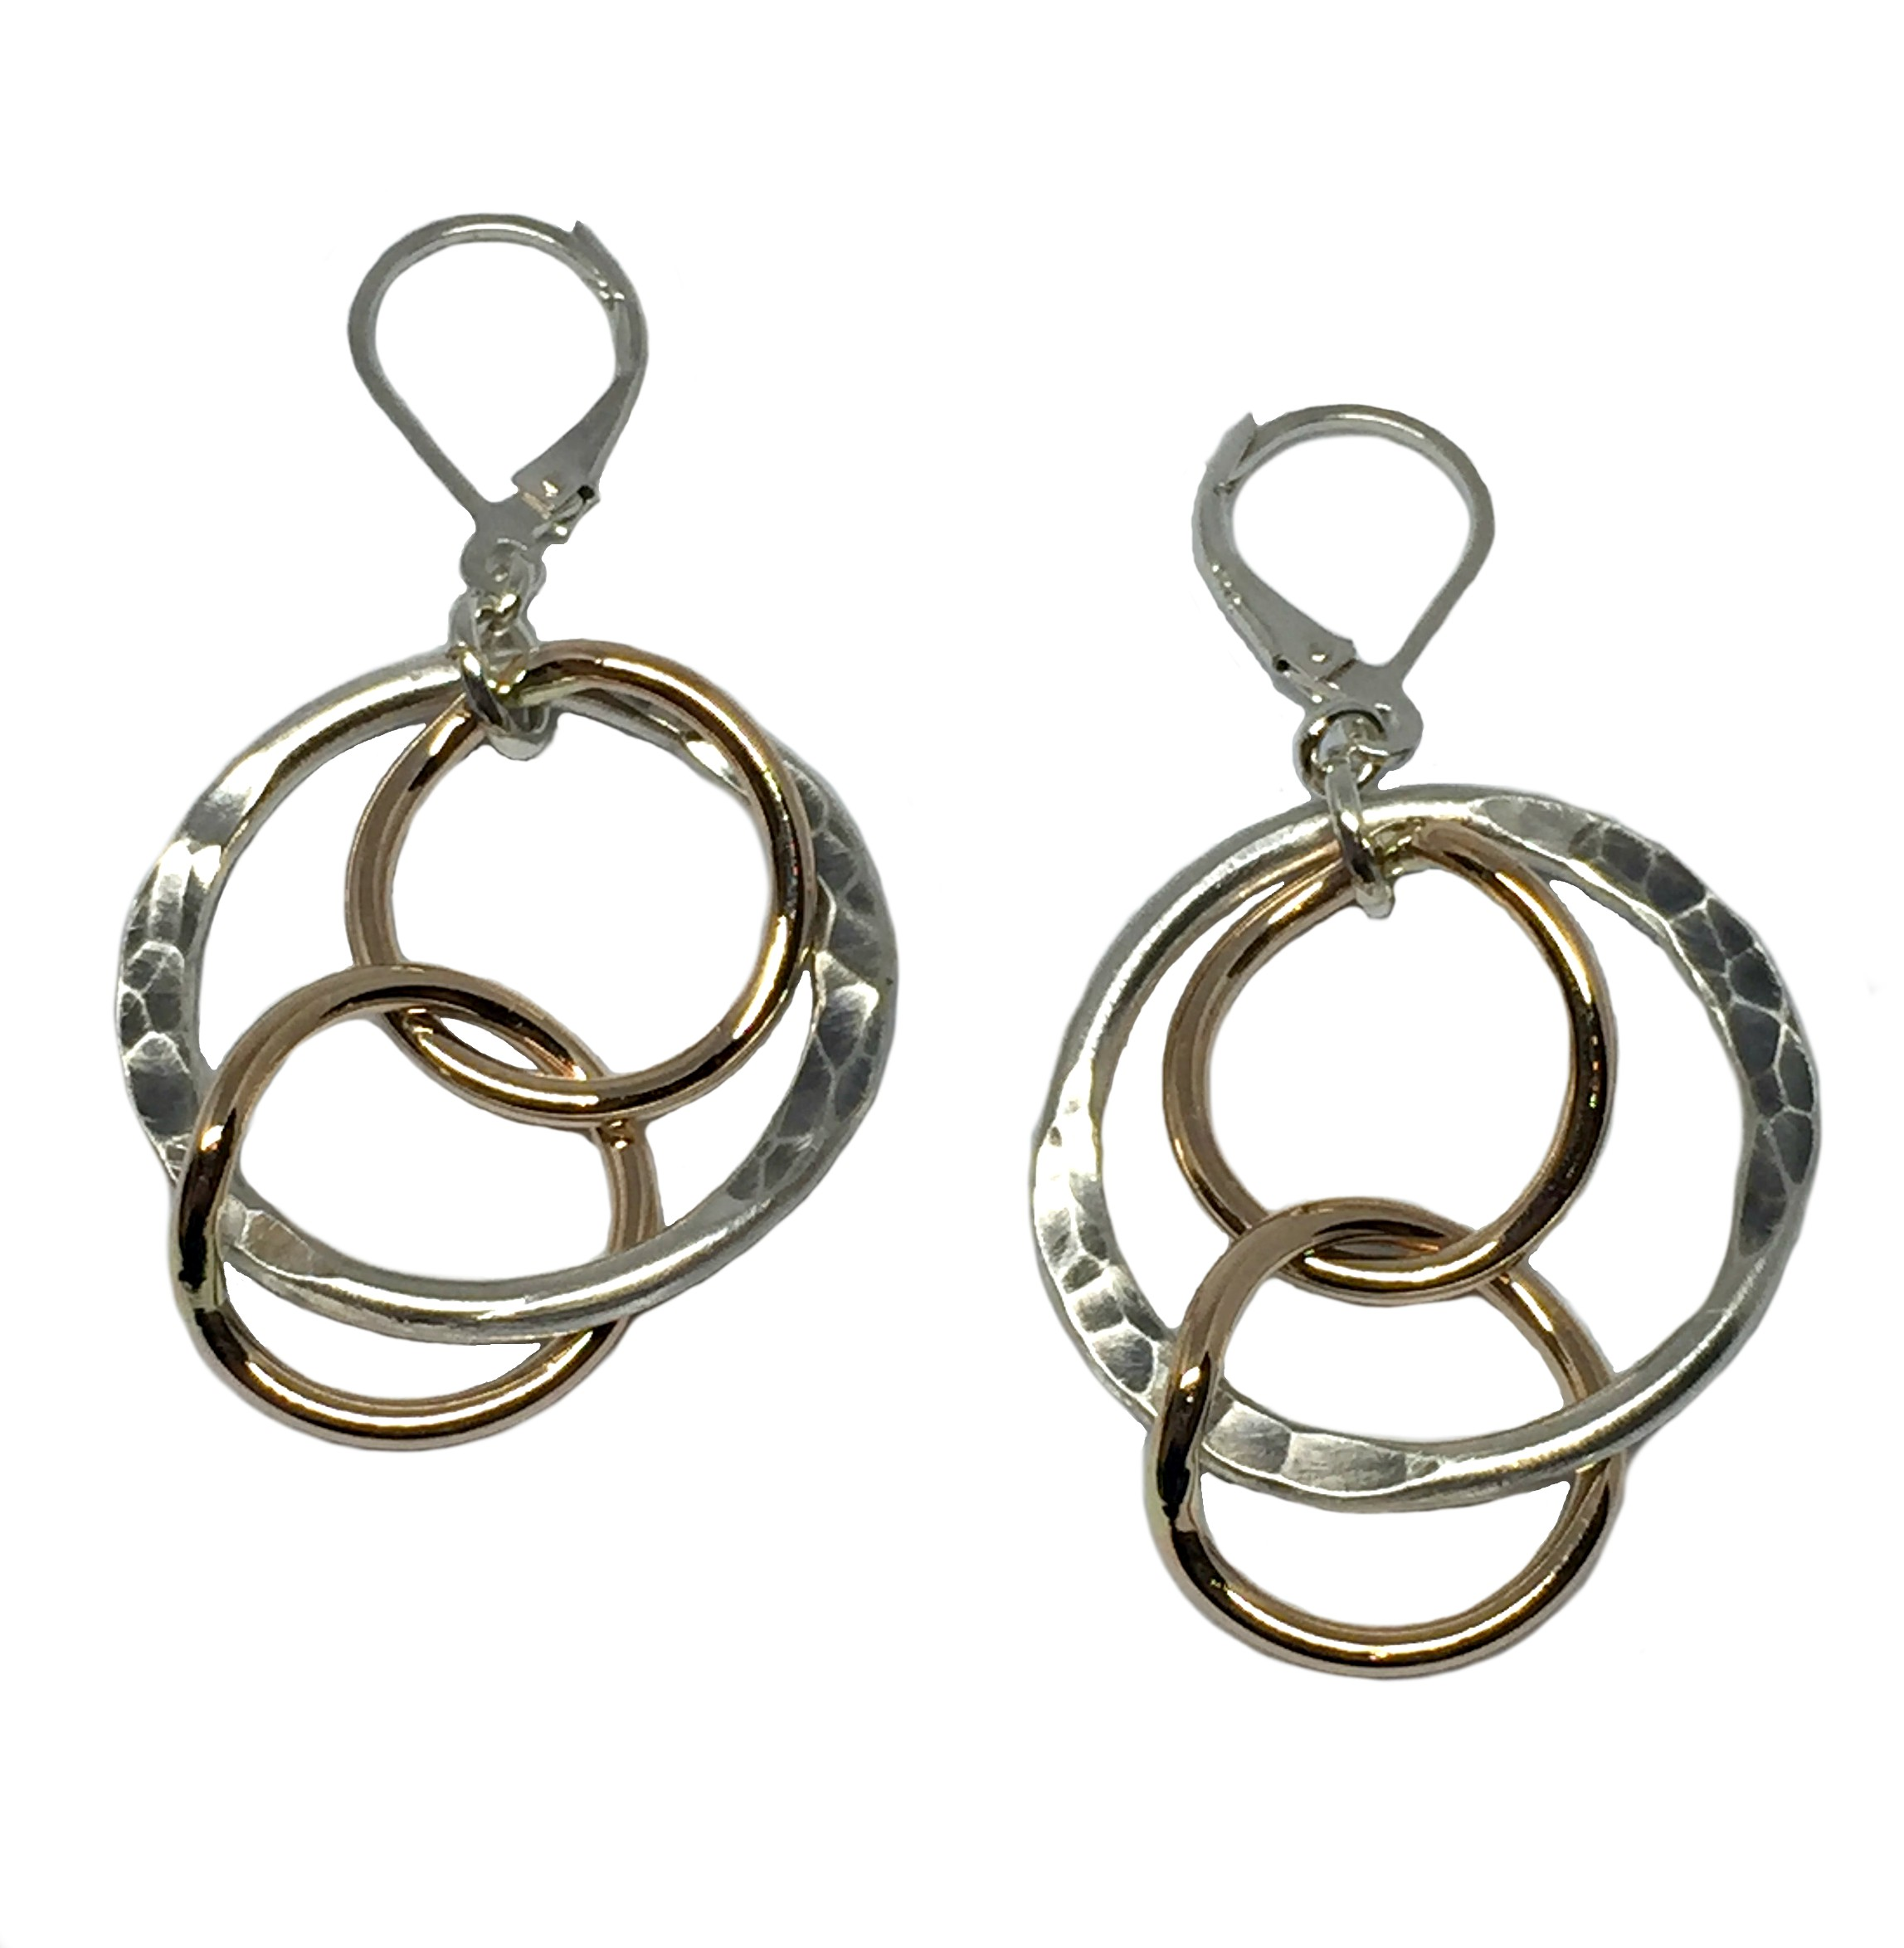 Karyn Chopik Sterling Silver and Bronze Earrings | Effusion Art Gallery + Cast Glass Studio, Invermere BC